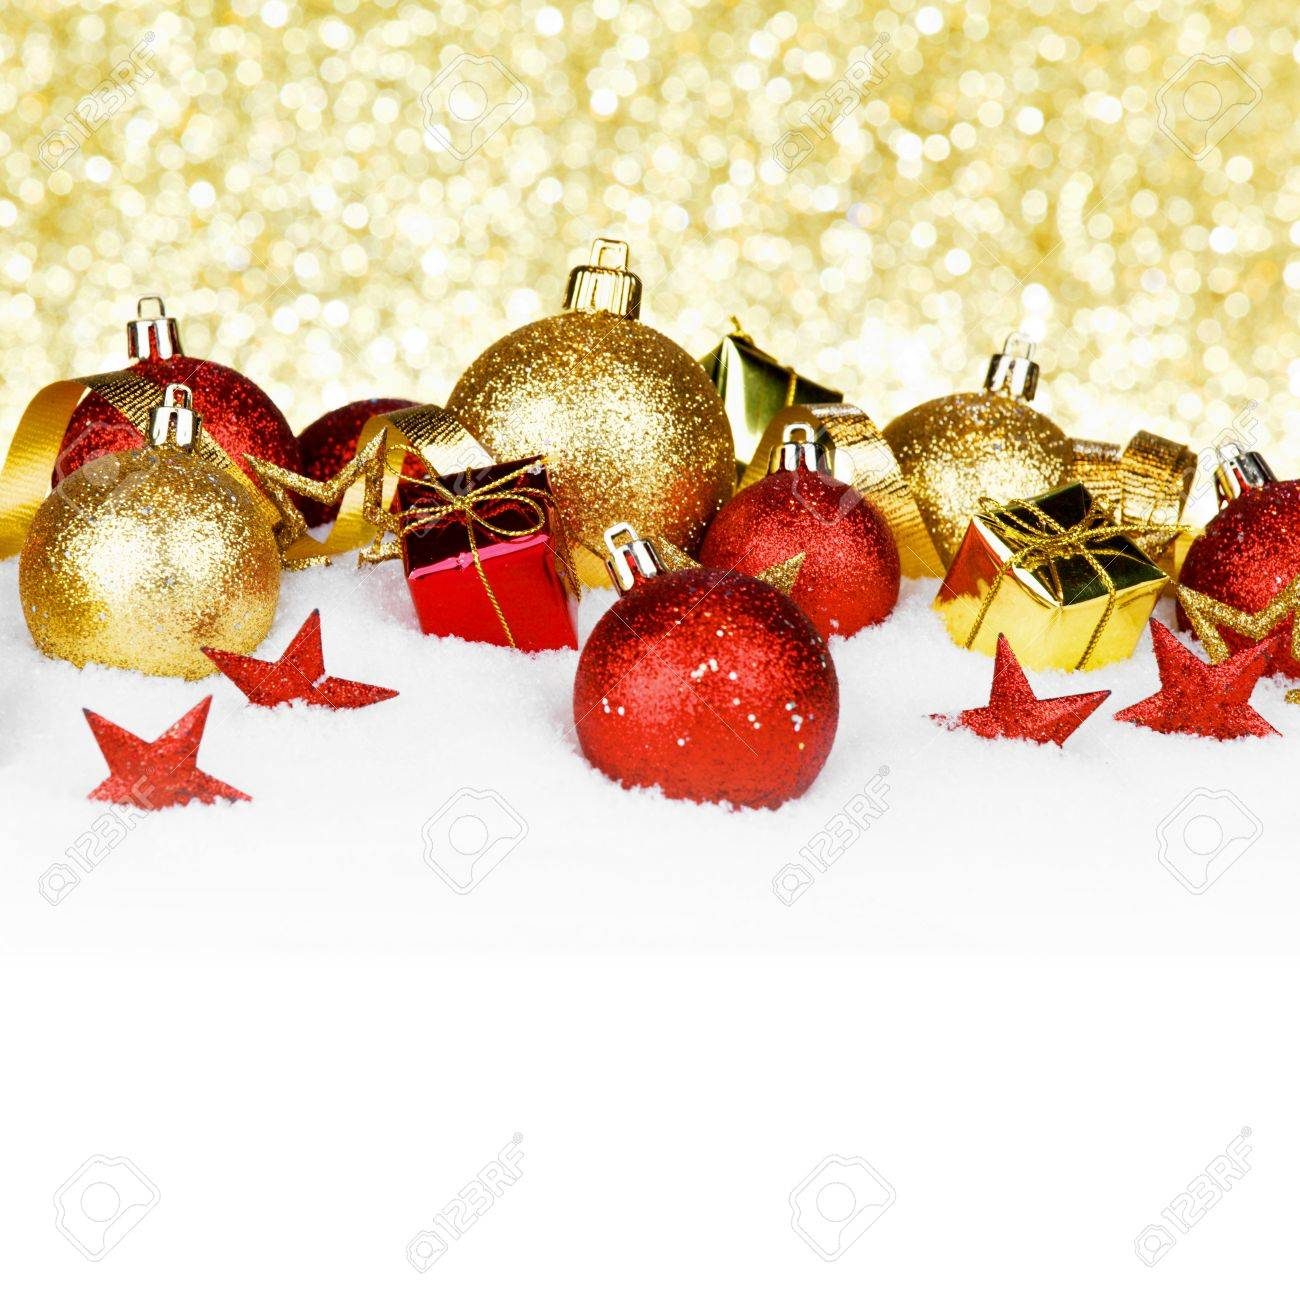 christmas card with colorful decorations in snow on gold background